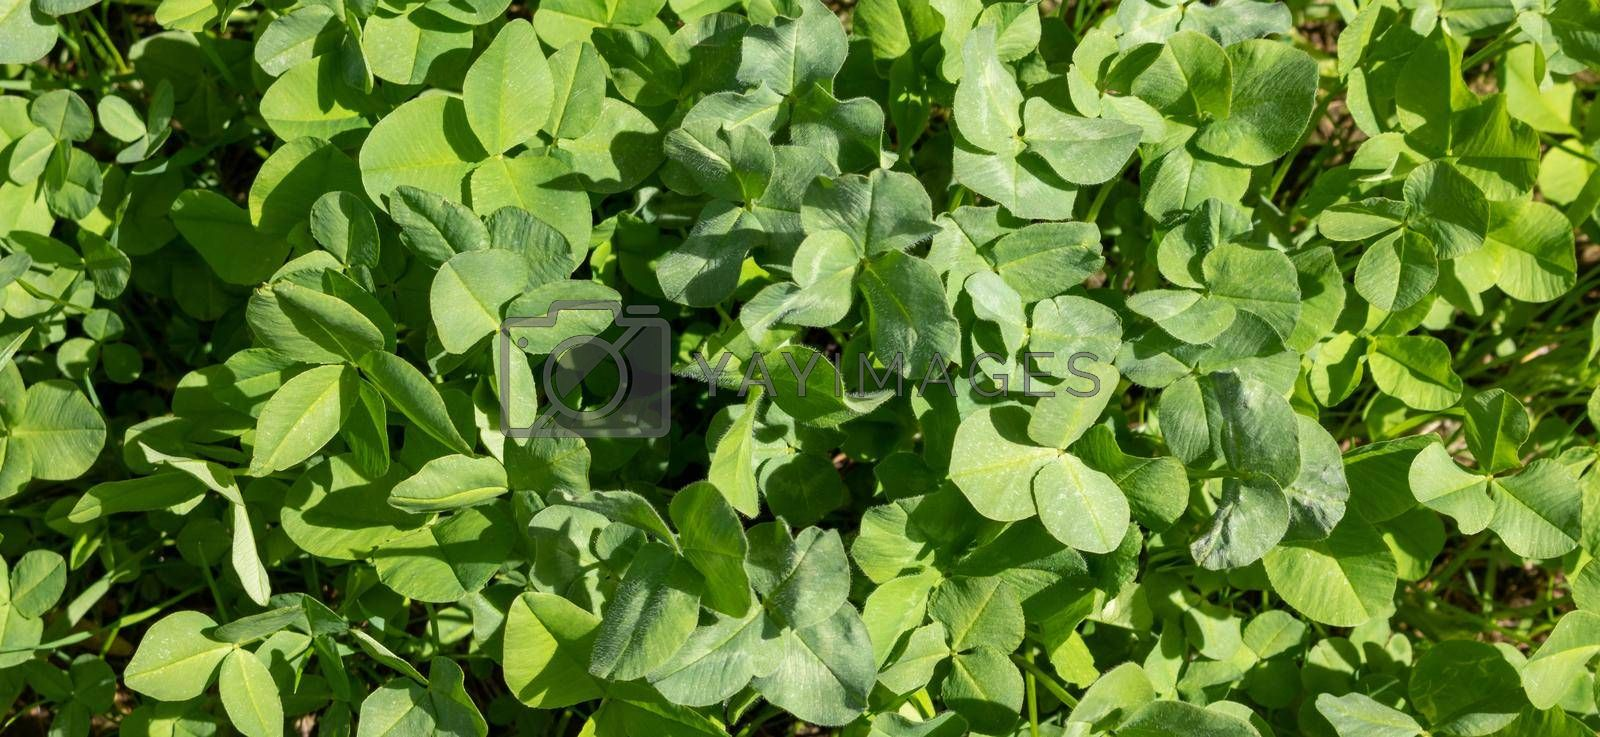 Green background of the four-leaf clover plant. An Irish traditional symbol. St. Patrick's Day.